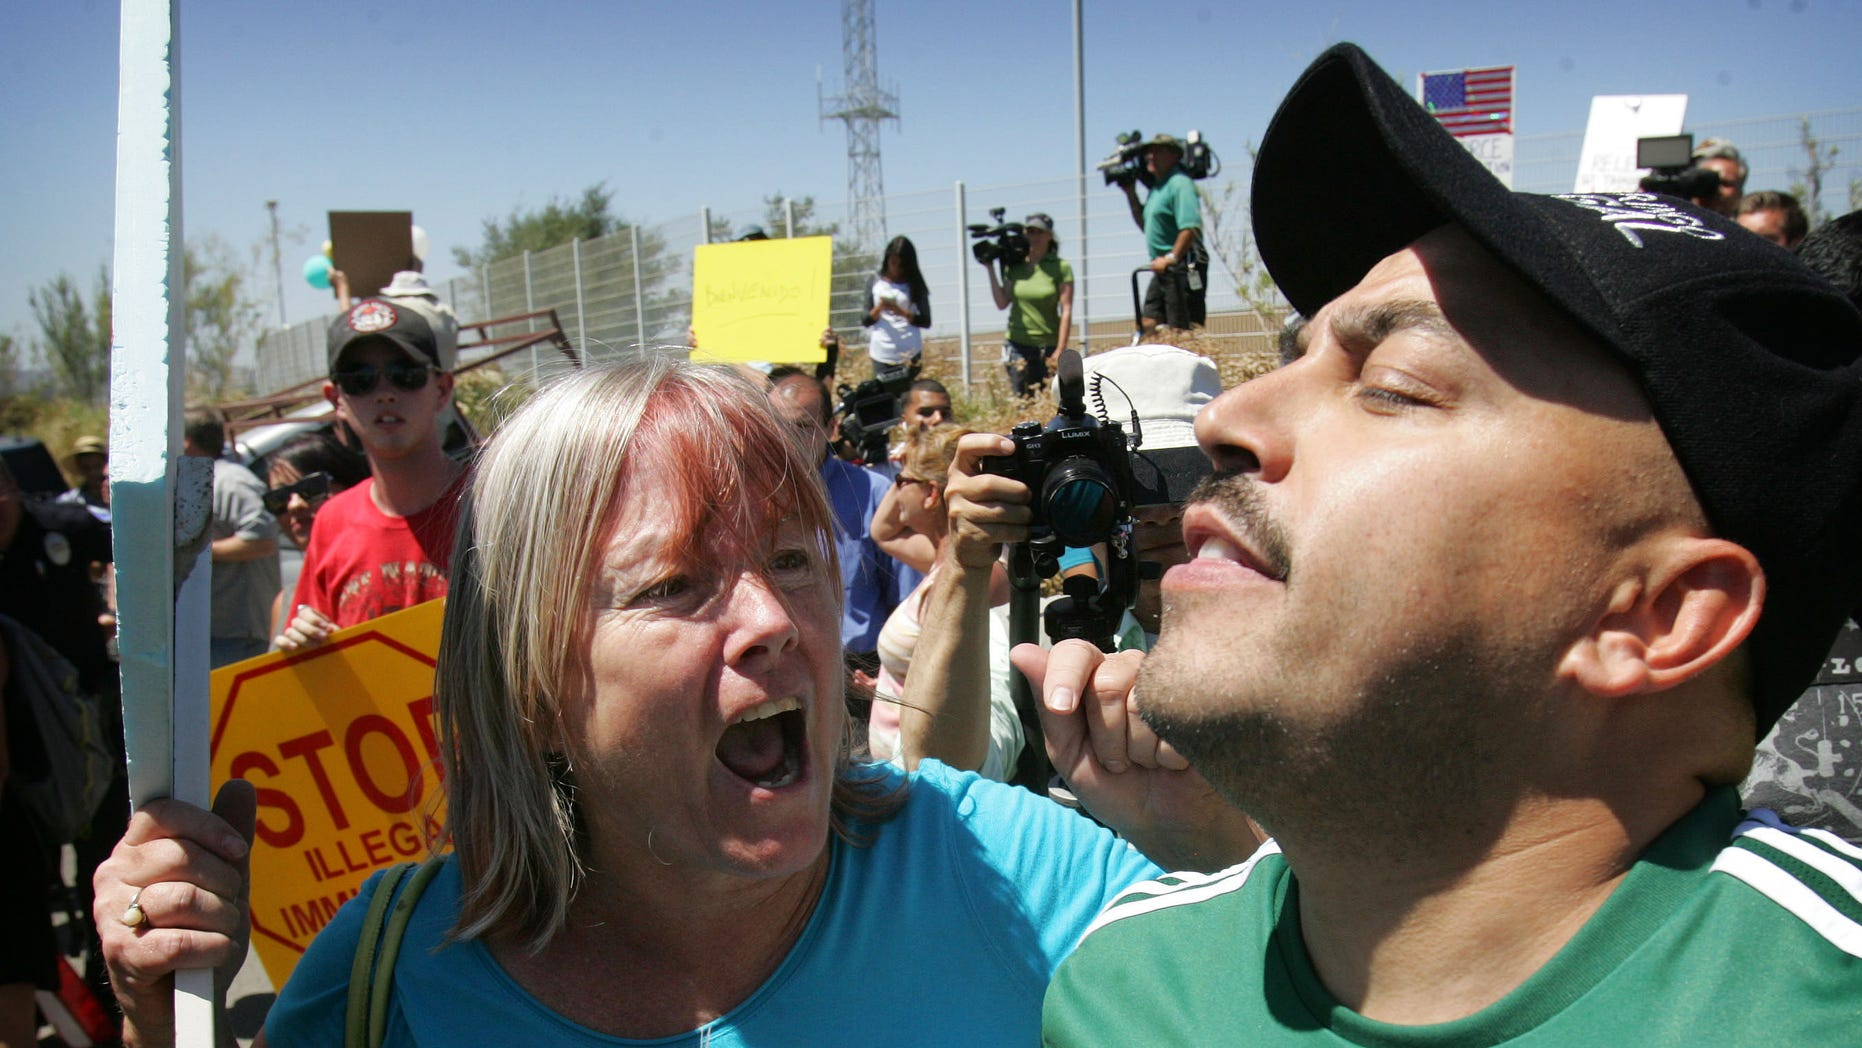 An unidentified protester, left, argues with American citizen Lupillo Rivera, brother of Mexican-American singer Jenni Rivera.